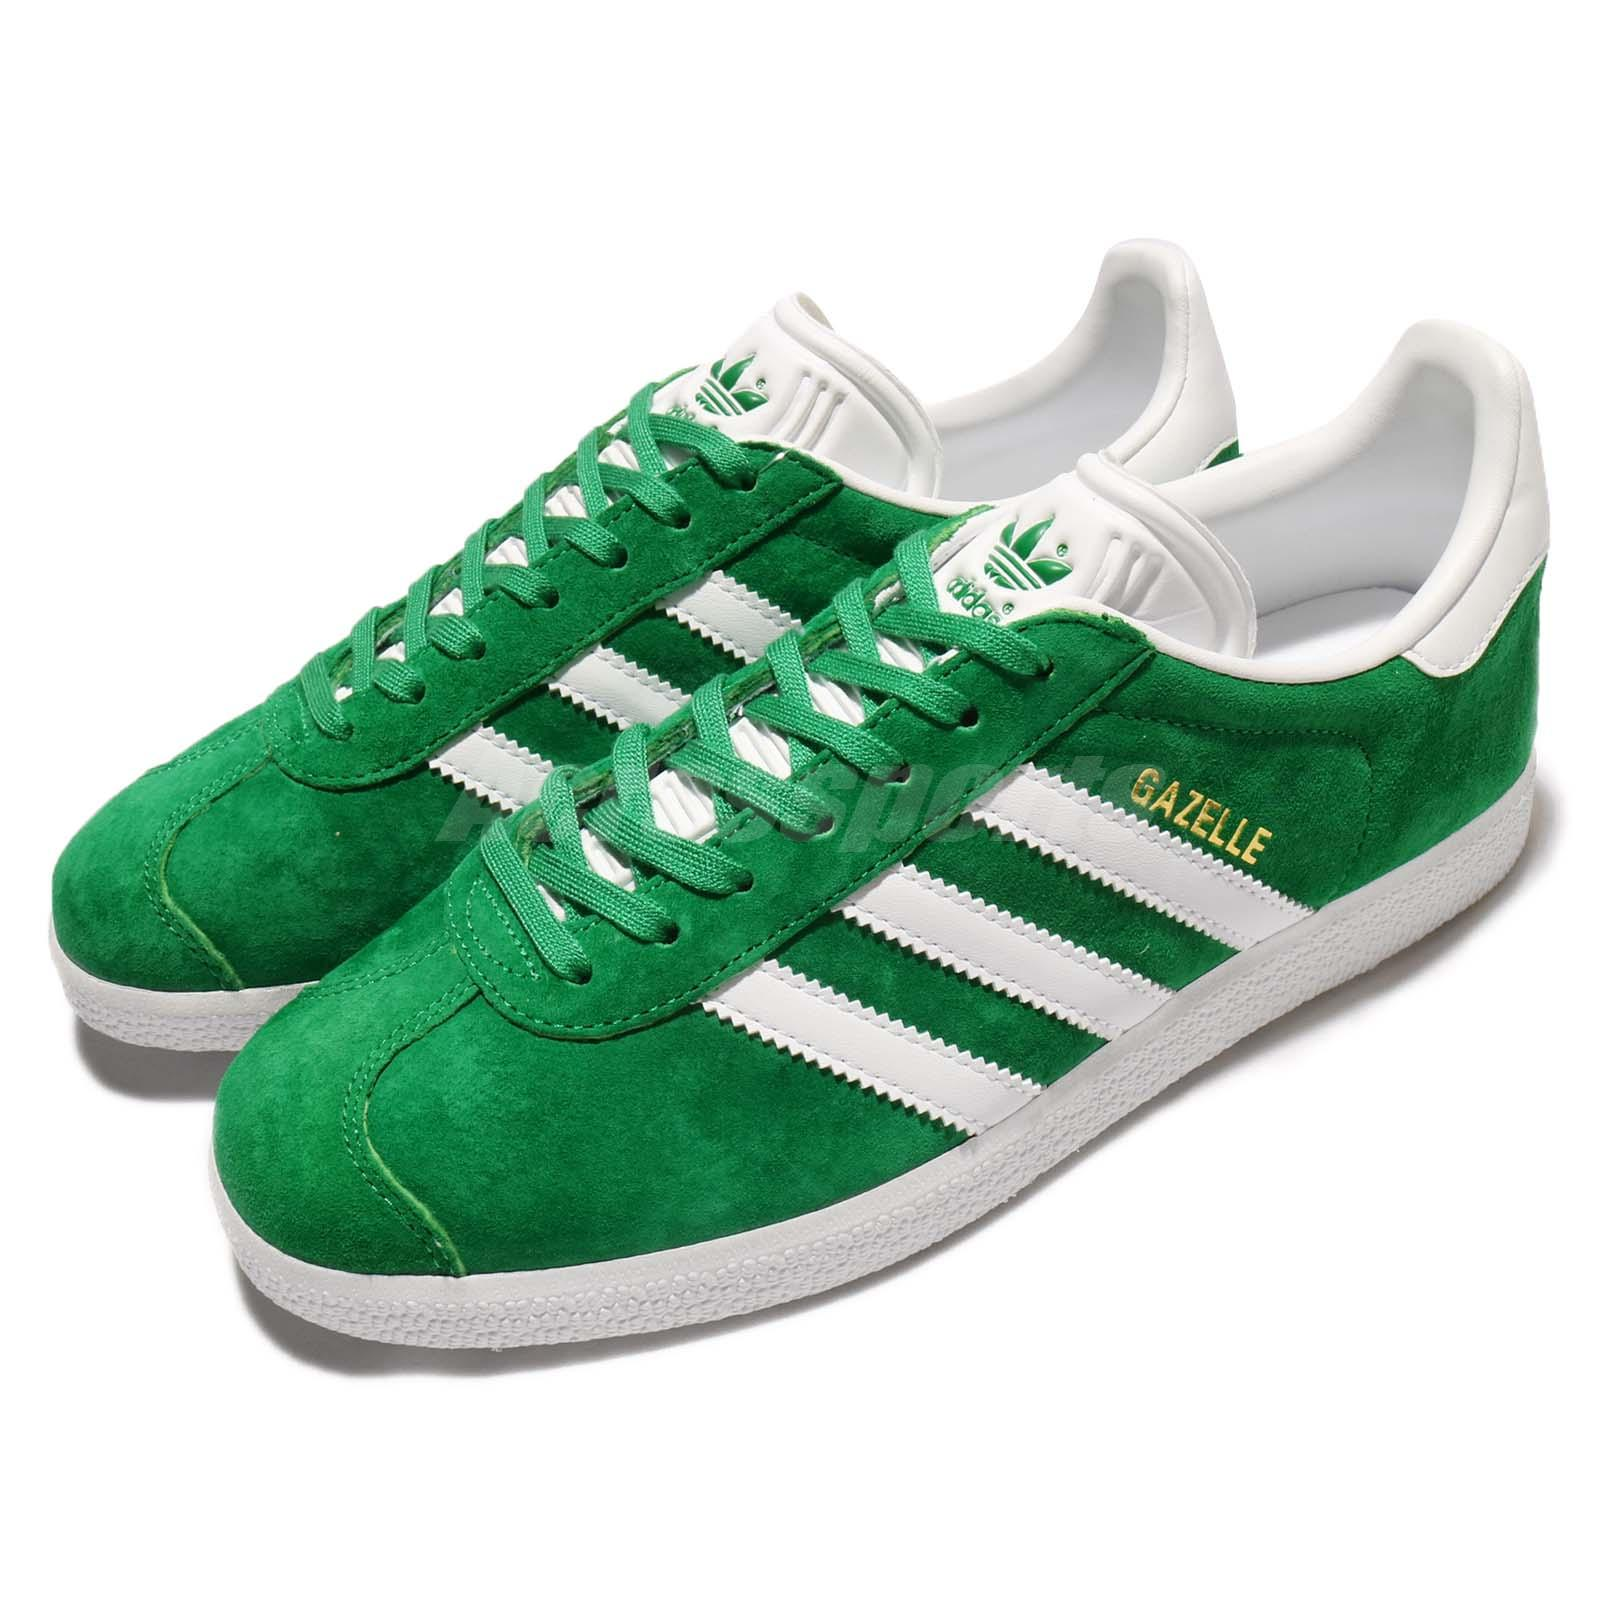 adidas Originals Gazelle Green White Nubuck Men Classic Shoe Sneaker BB5477